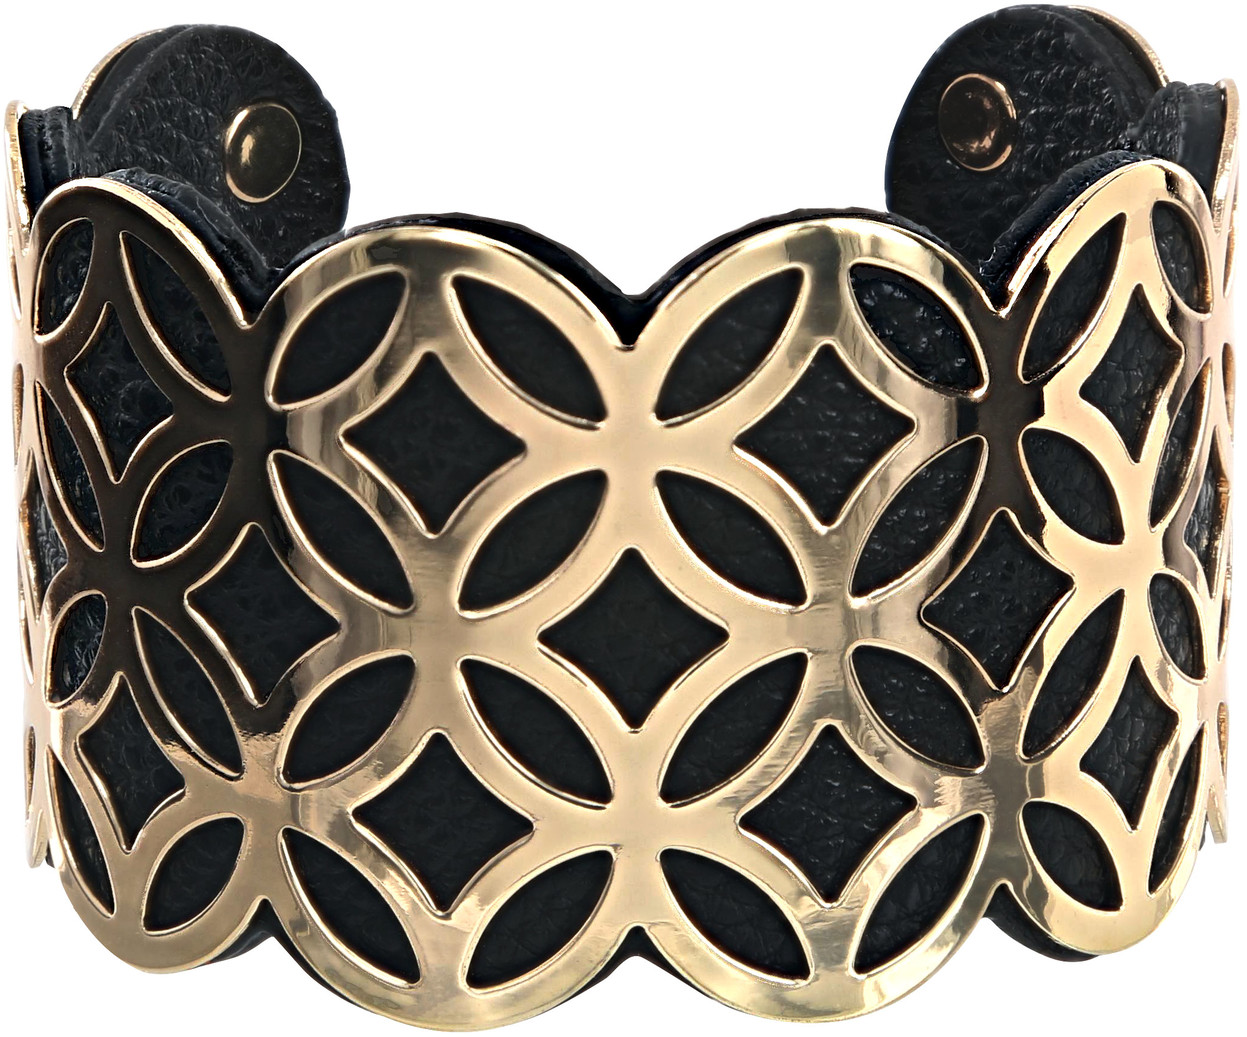 "Gold & Black by H2Z Filigree Jewelry - Gold & Black - 1.75"" Geometric Cuff Bracelet"